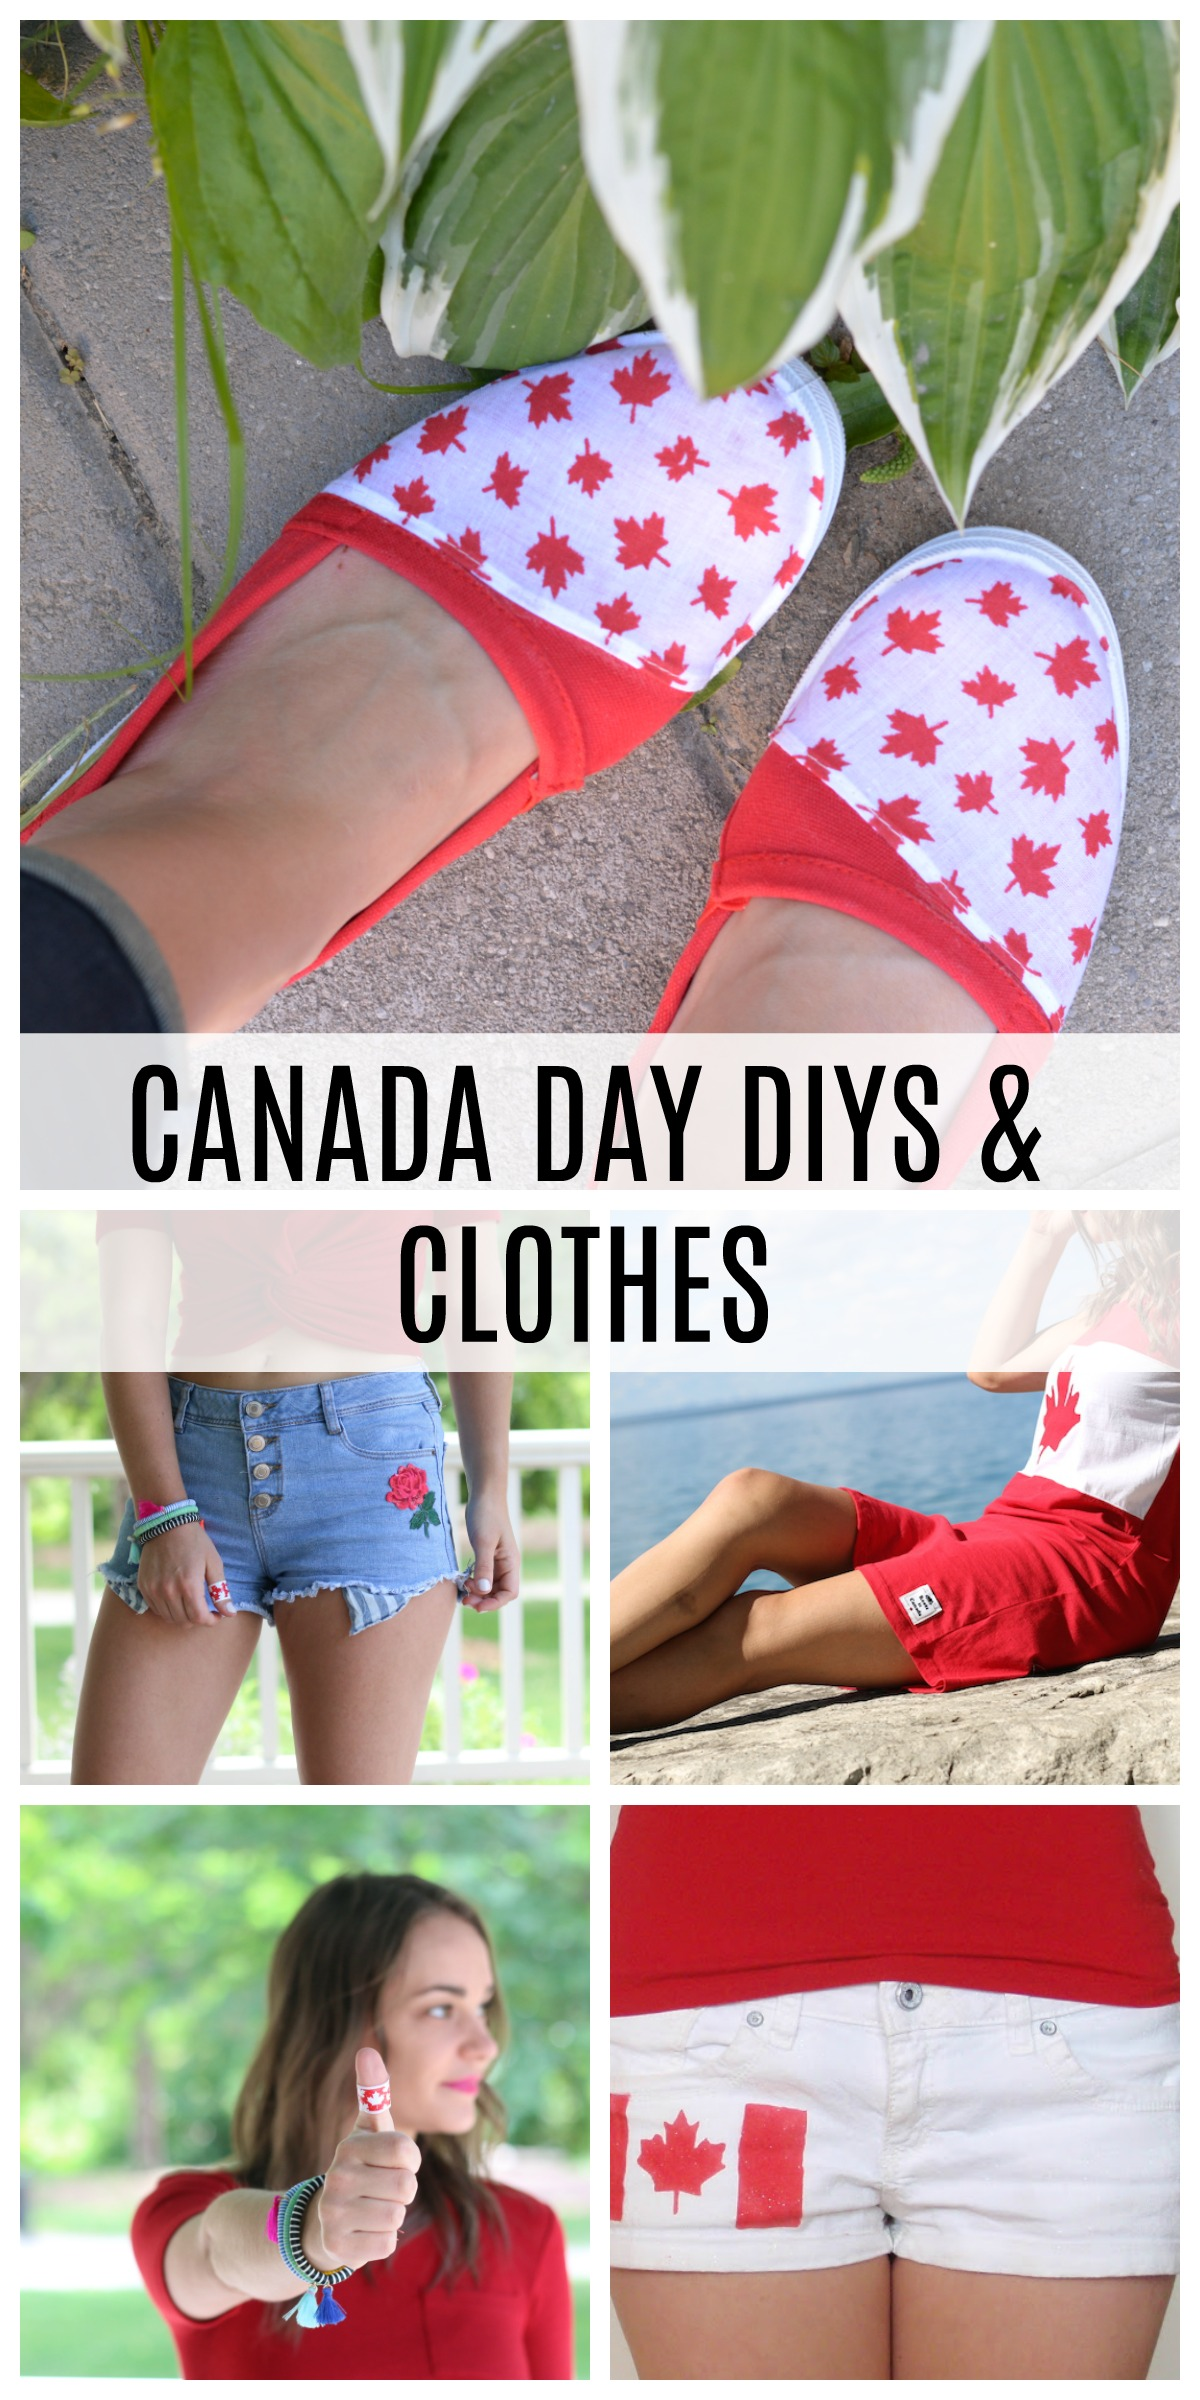 CANADA DAY OUTFIT AND DIY IDEAS